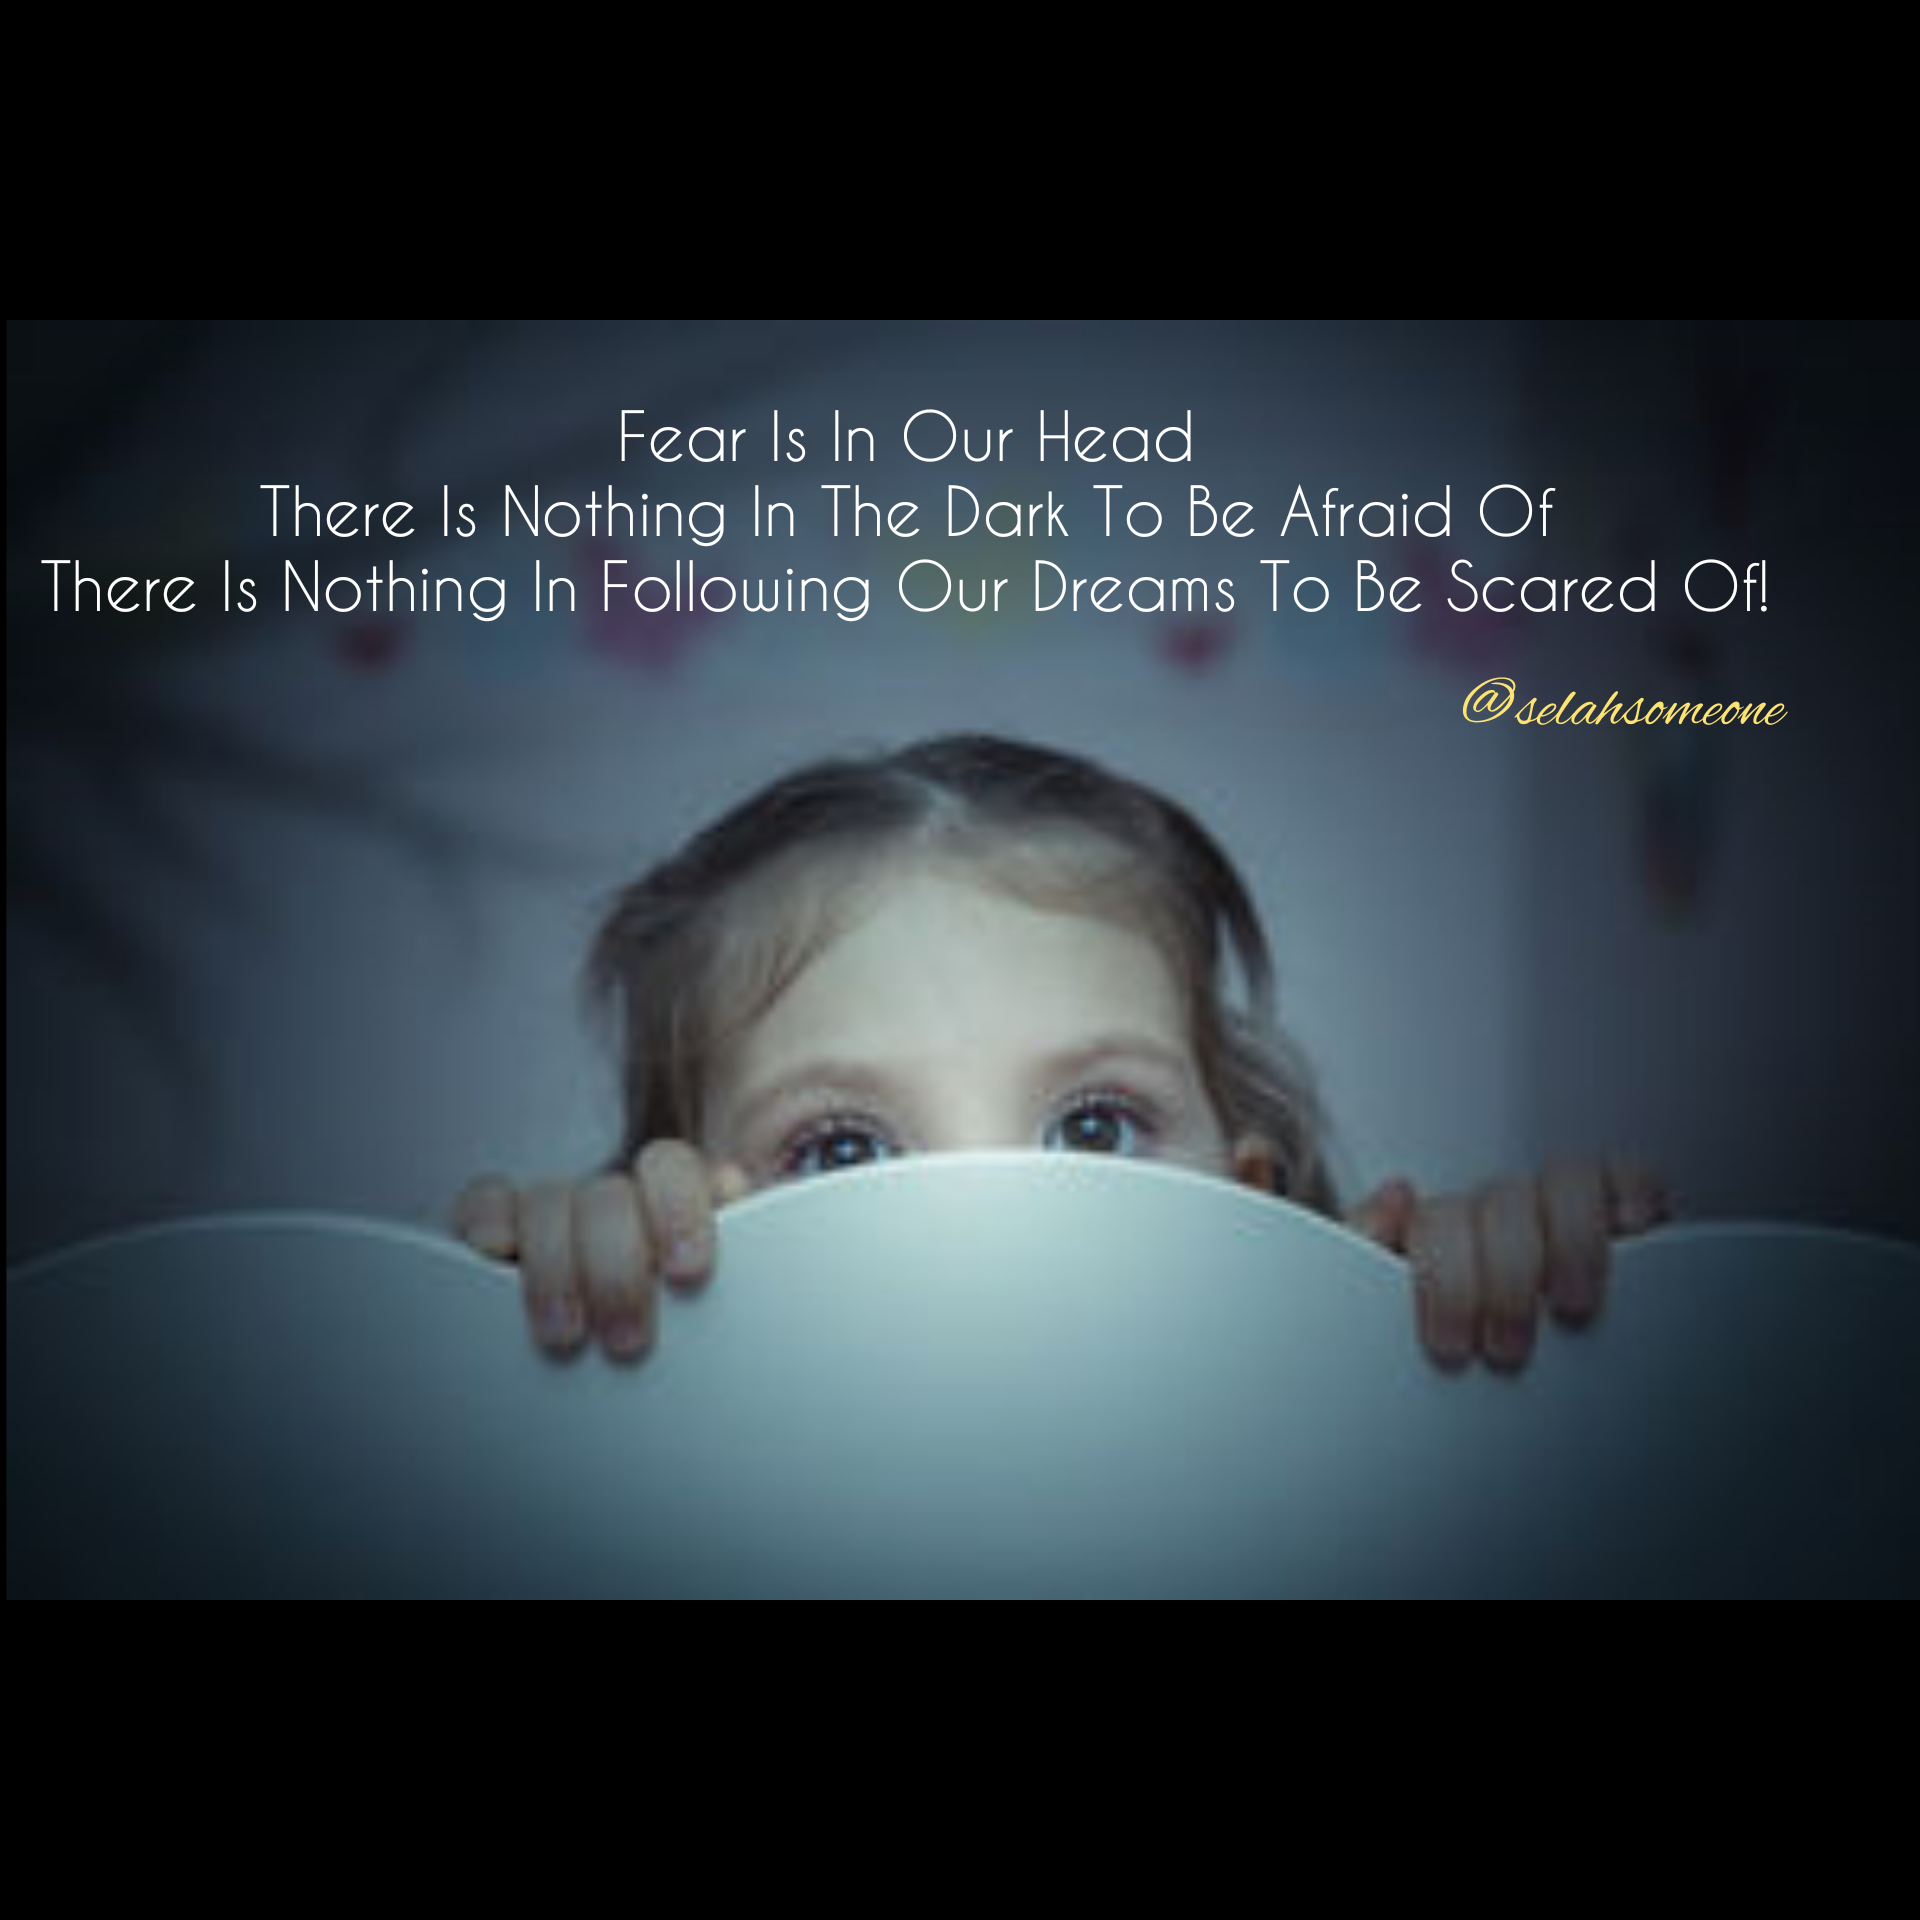 Why do people fear the dark